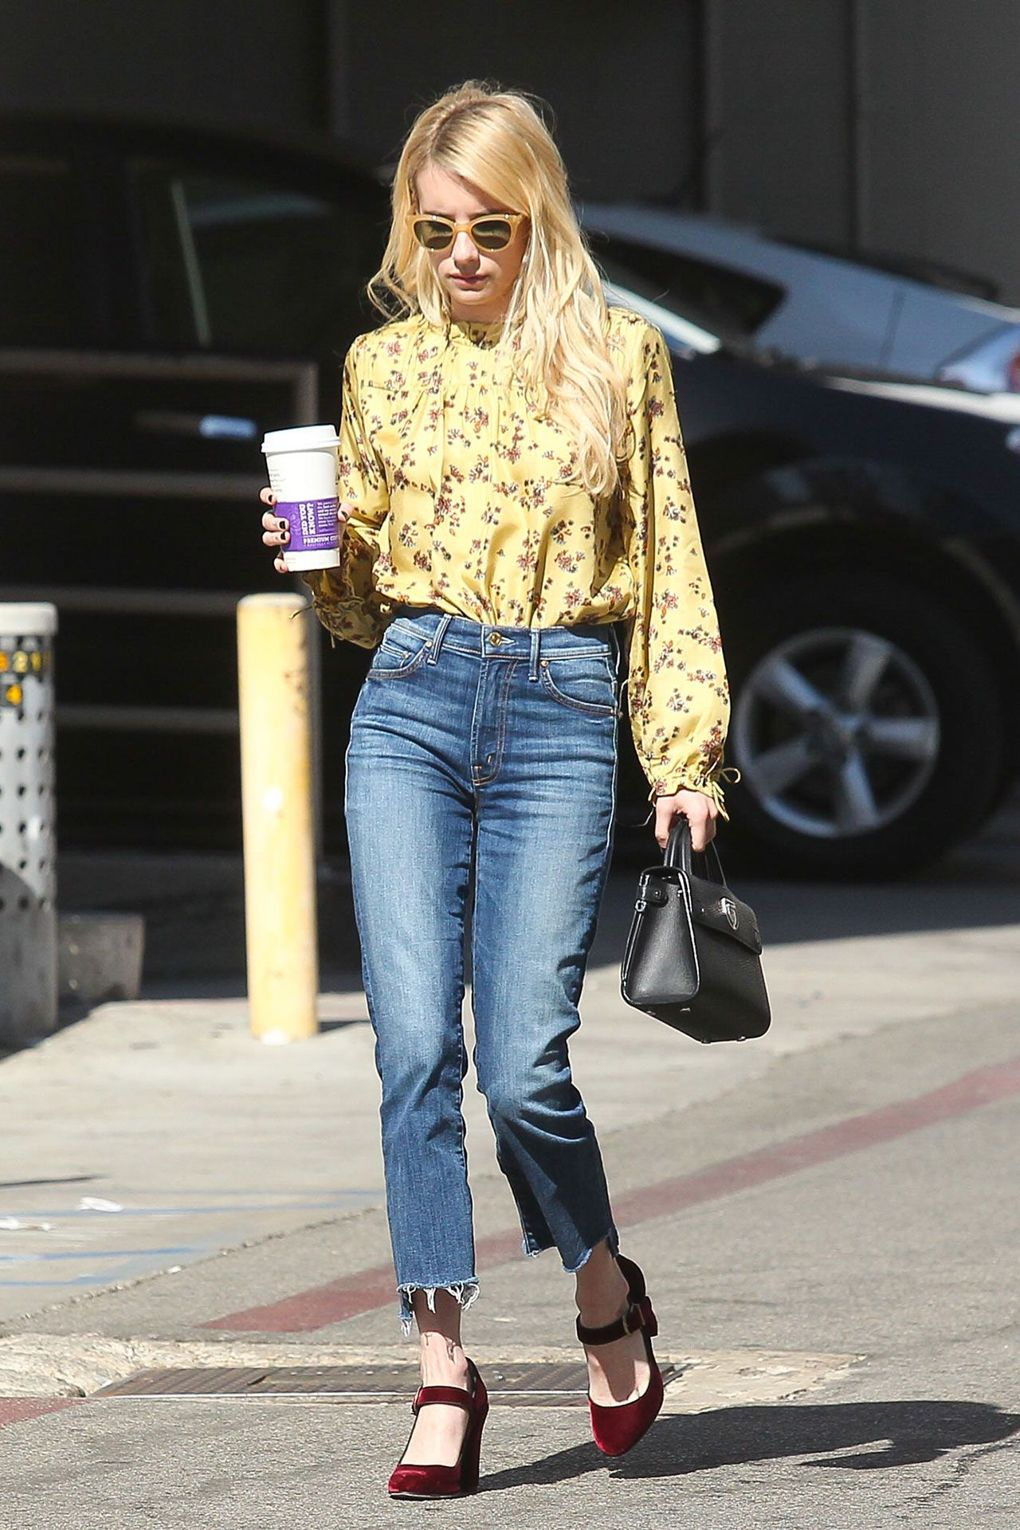 Catch-up on what the A-list have been wearing this week https://t.co/X3gv1U18IT https://t.co/rrN6IKEFEi